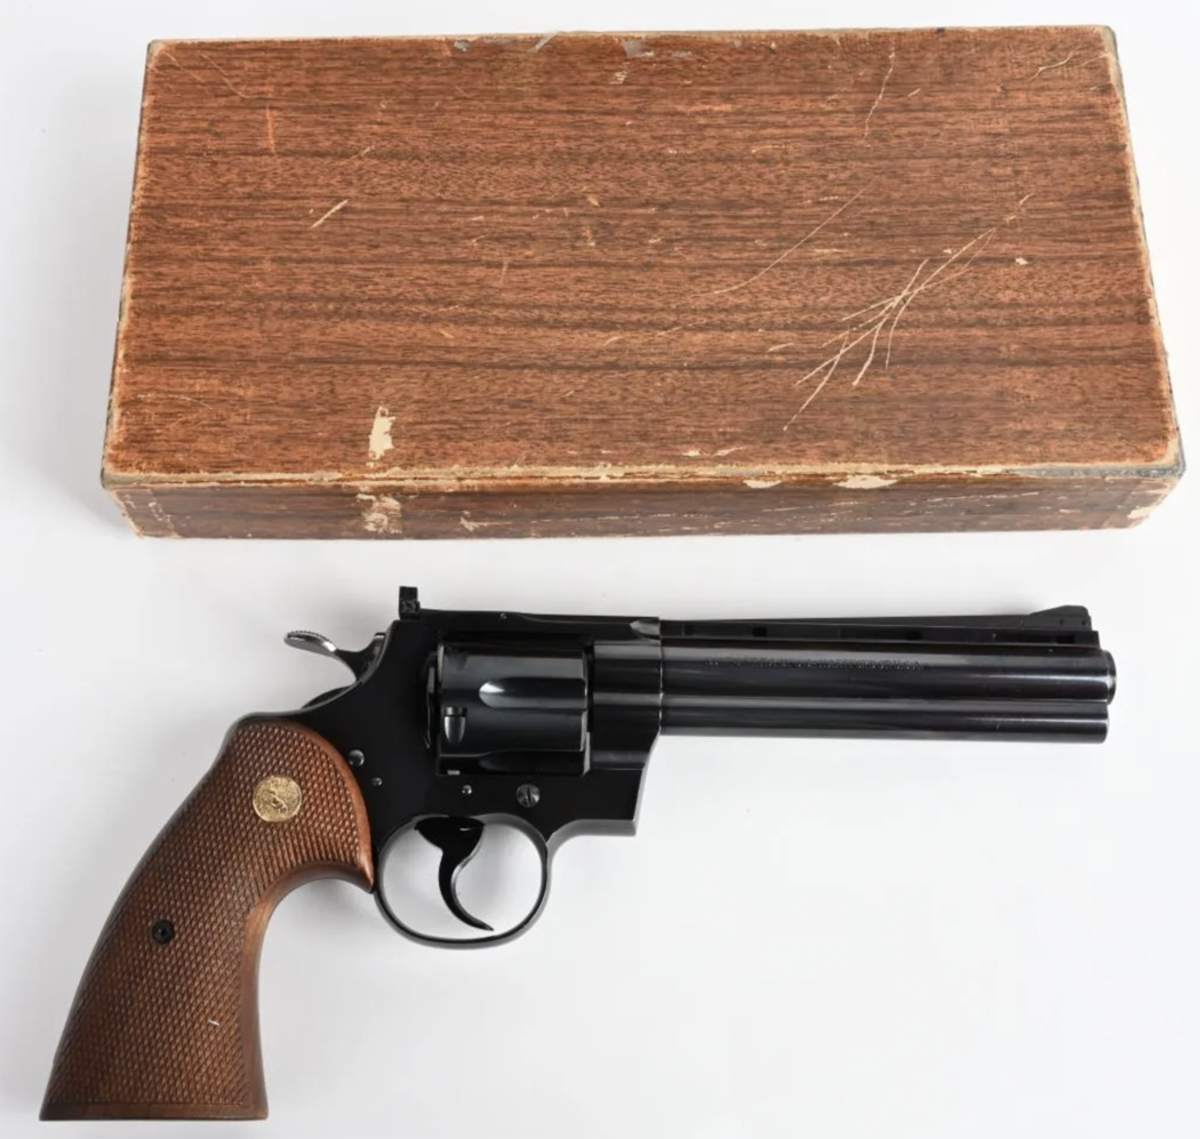 Rare and extremely desirable first-year (1955) Colt Python .357 Magnum, shipping box with factory letter confirming serial number 559 and recipient: Charlottesville (Va.) Hardware Co.